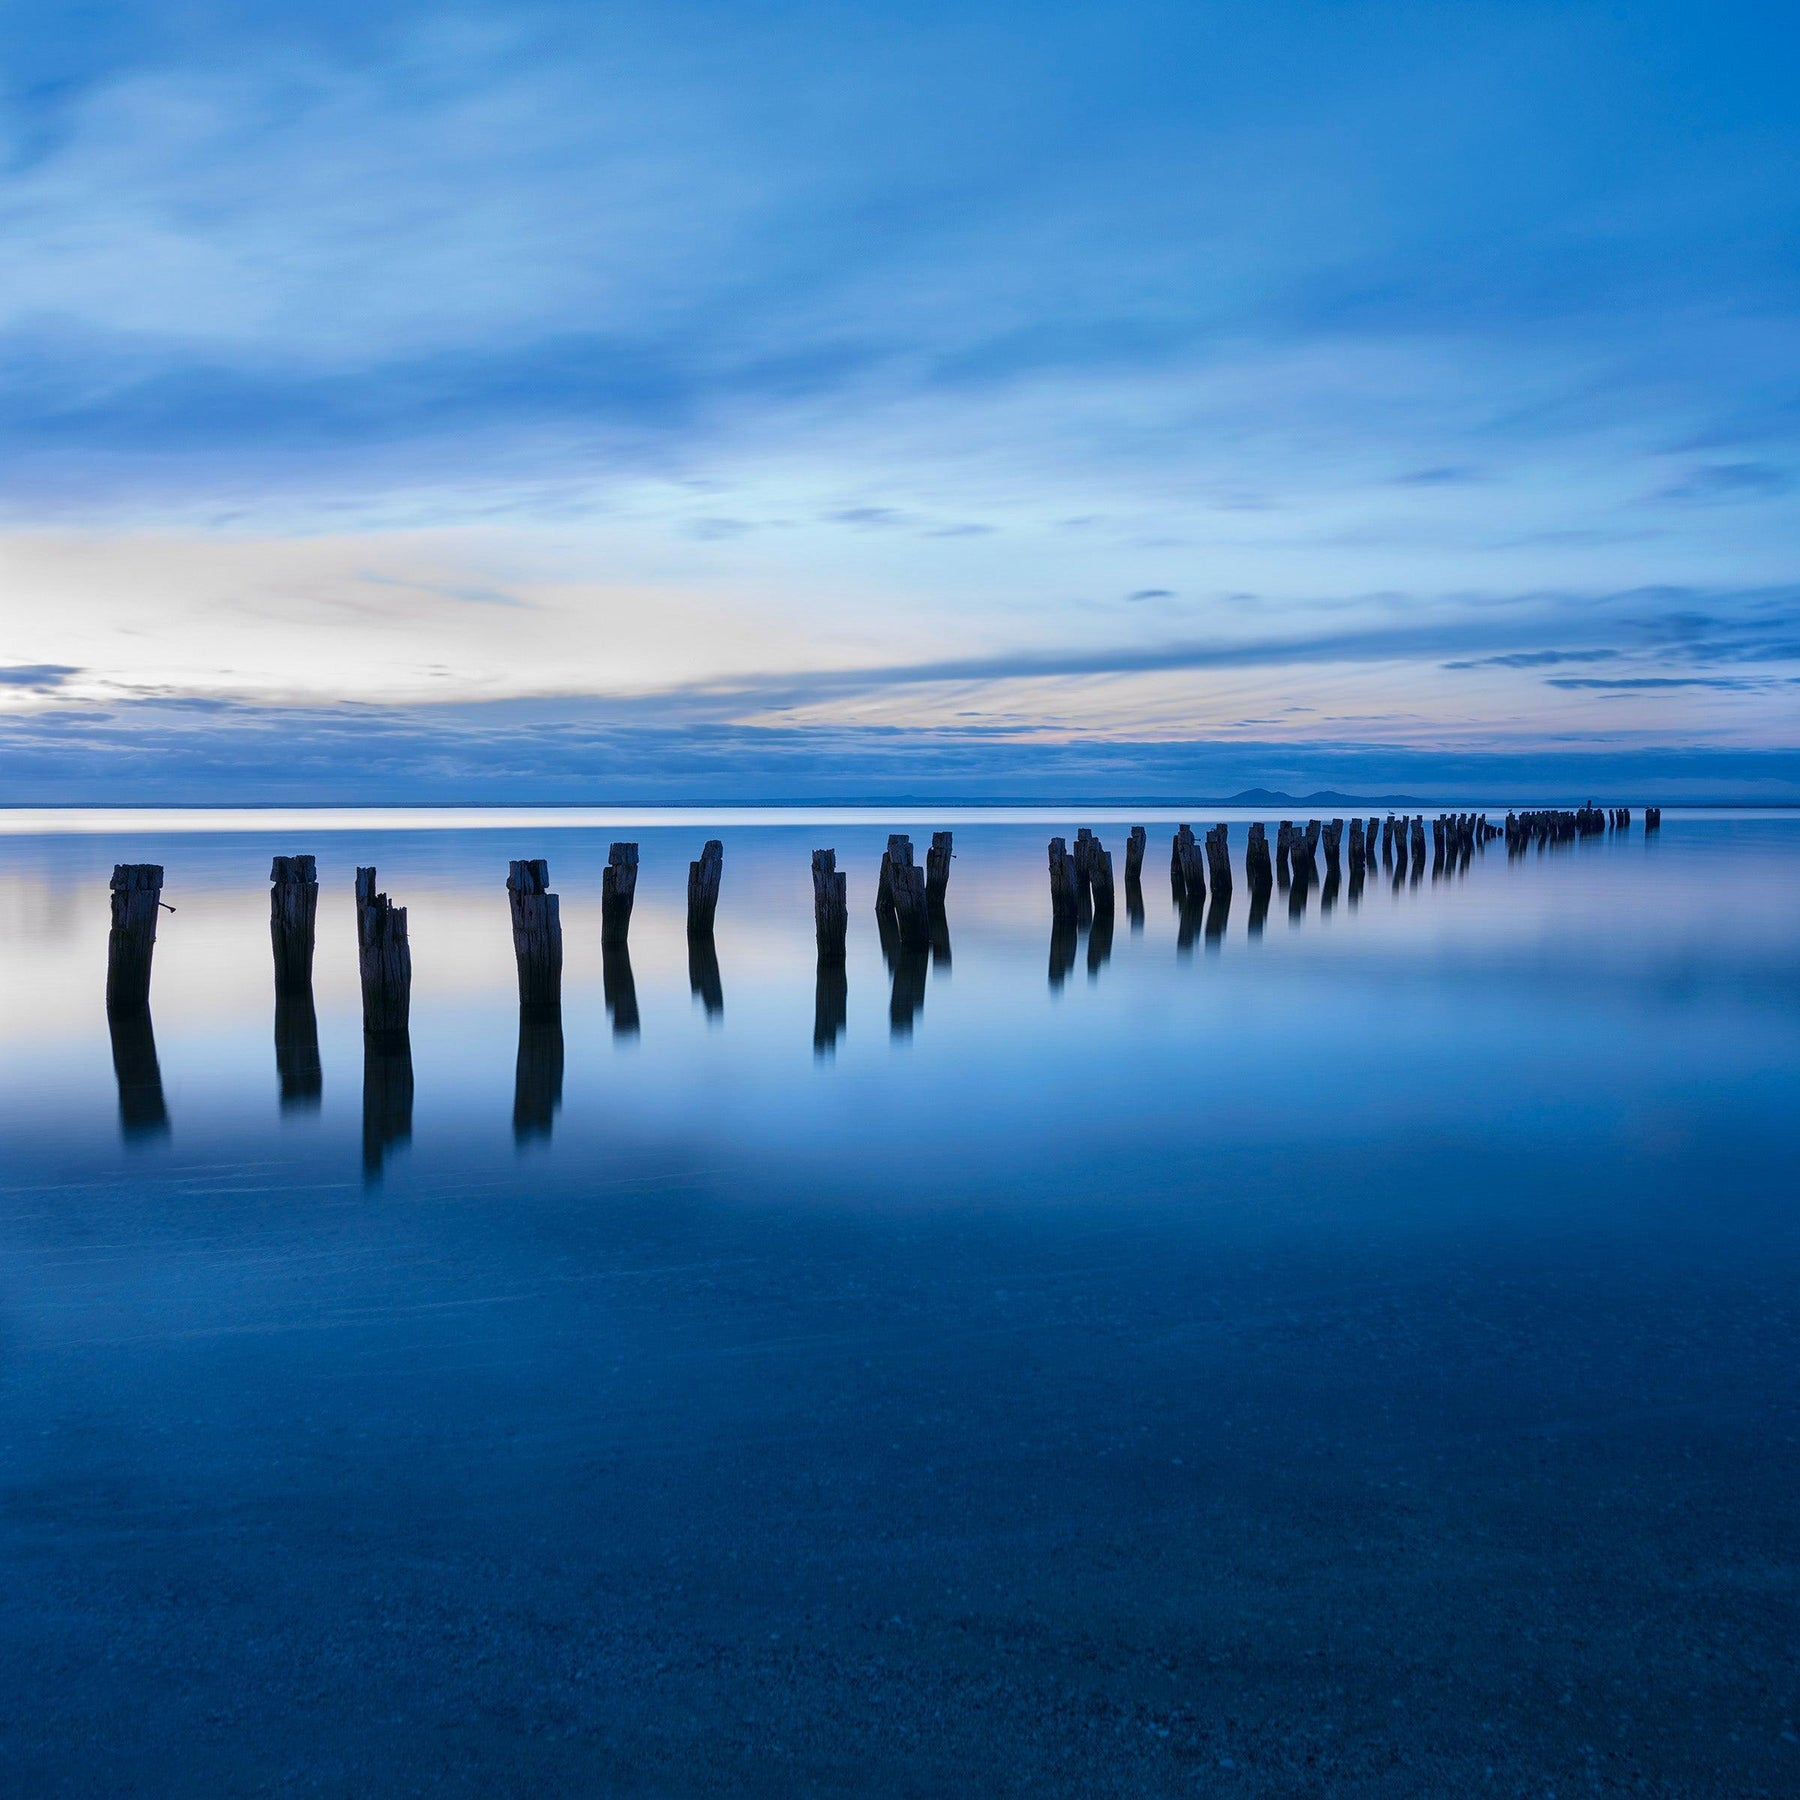 Remains of an old wooden jetty leading into a bay in Victoria Australia at sunrise